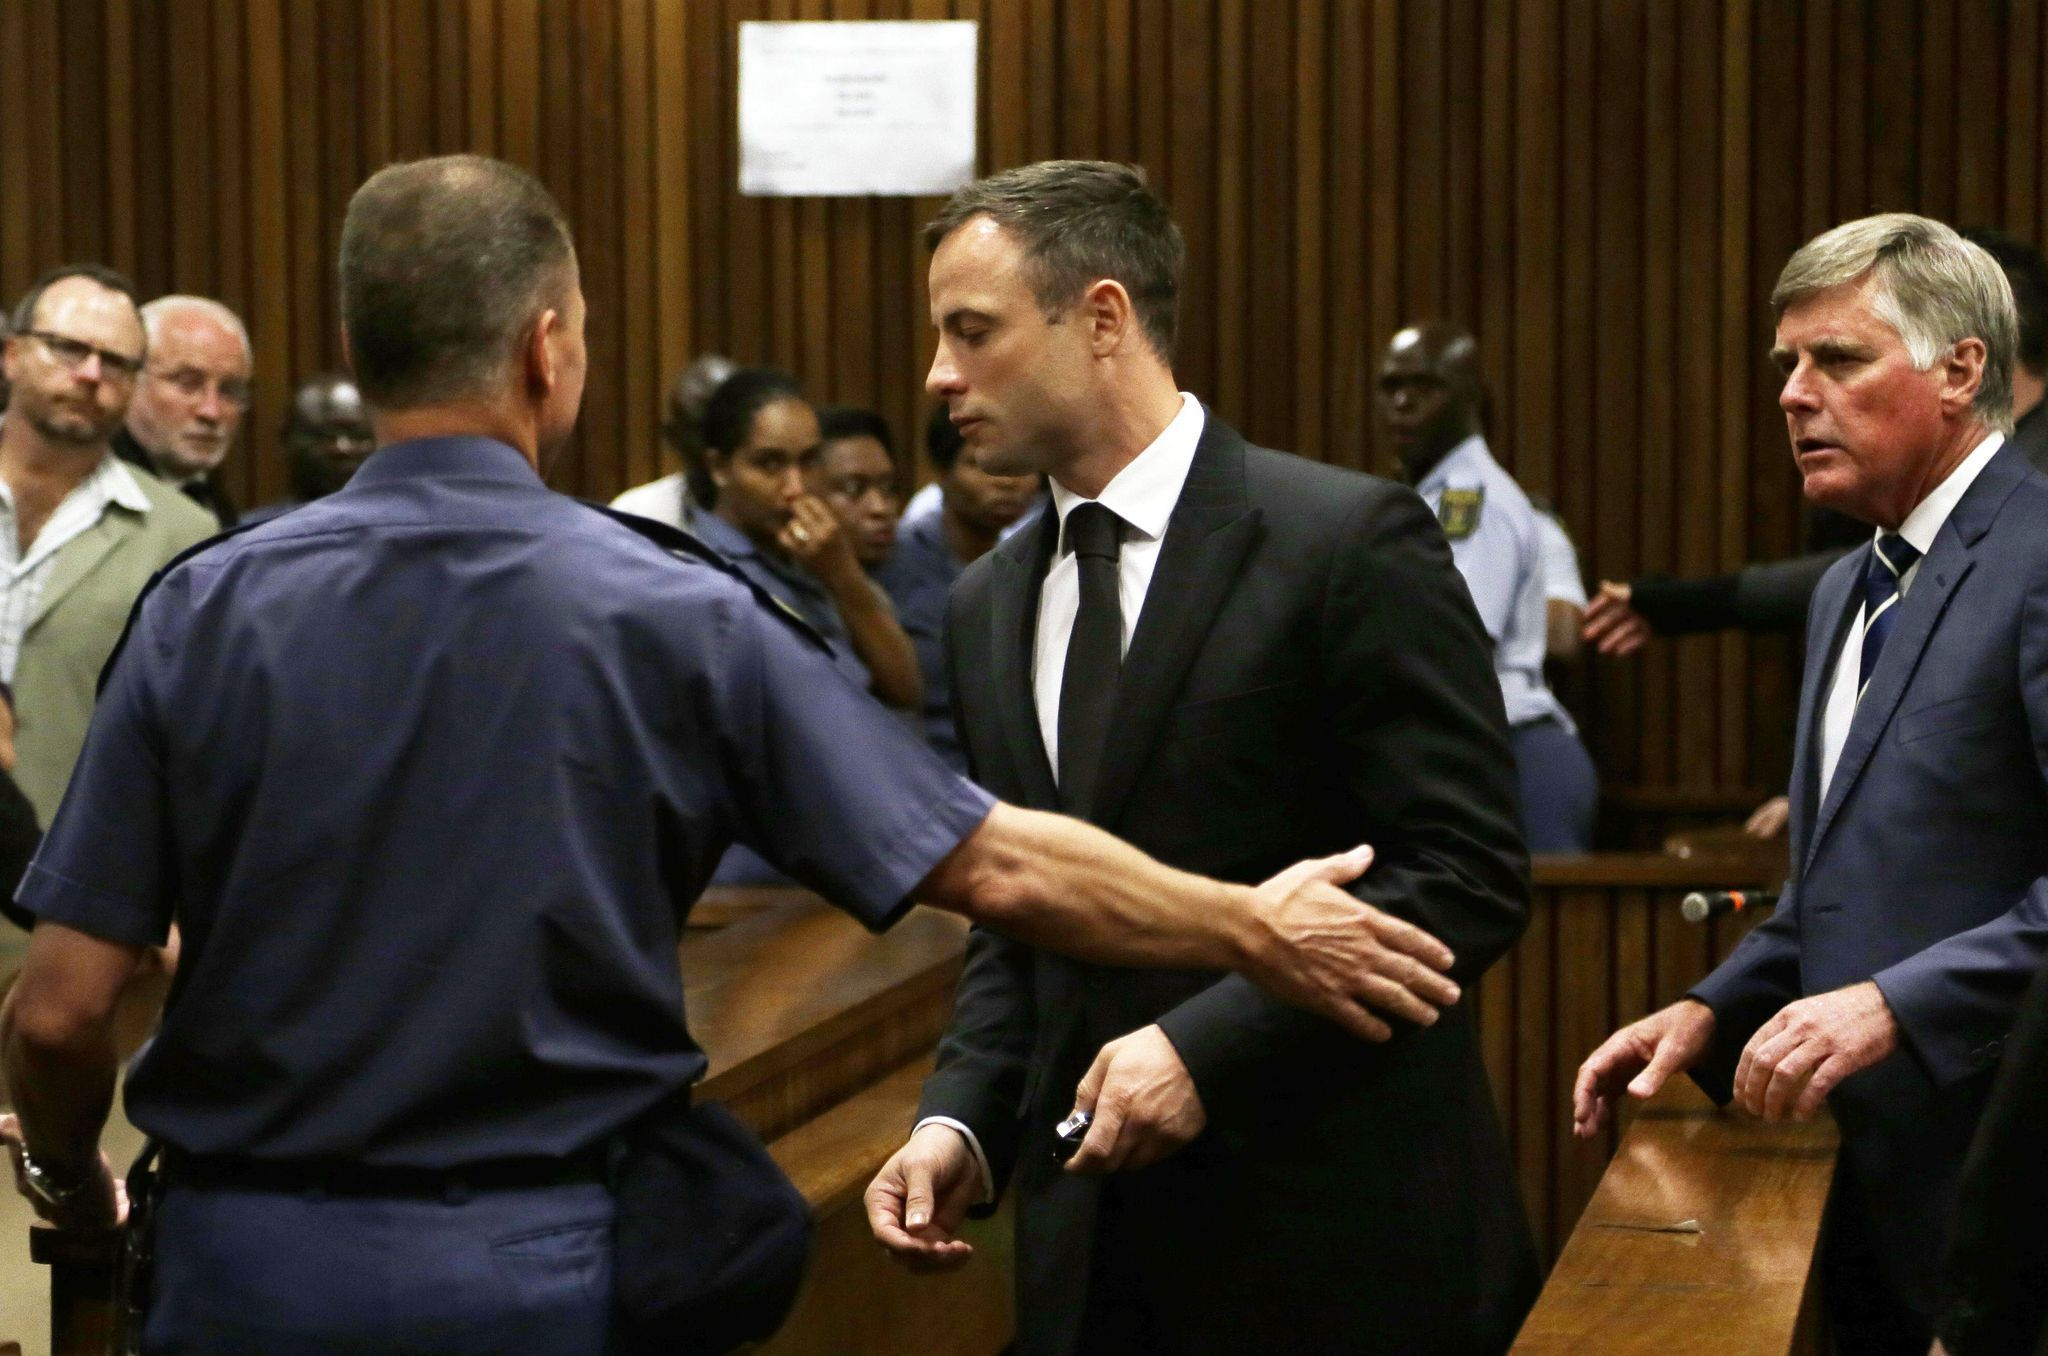 Oscar Pistorius sentence brings quick reaction from sports officials